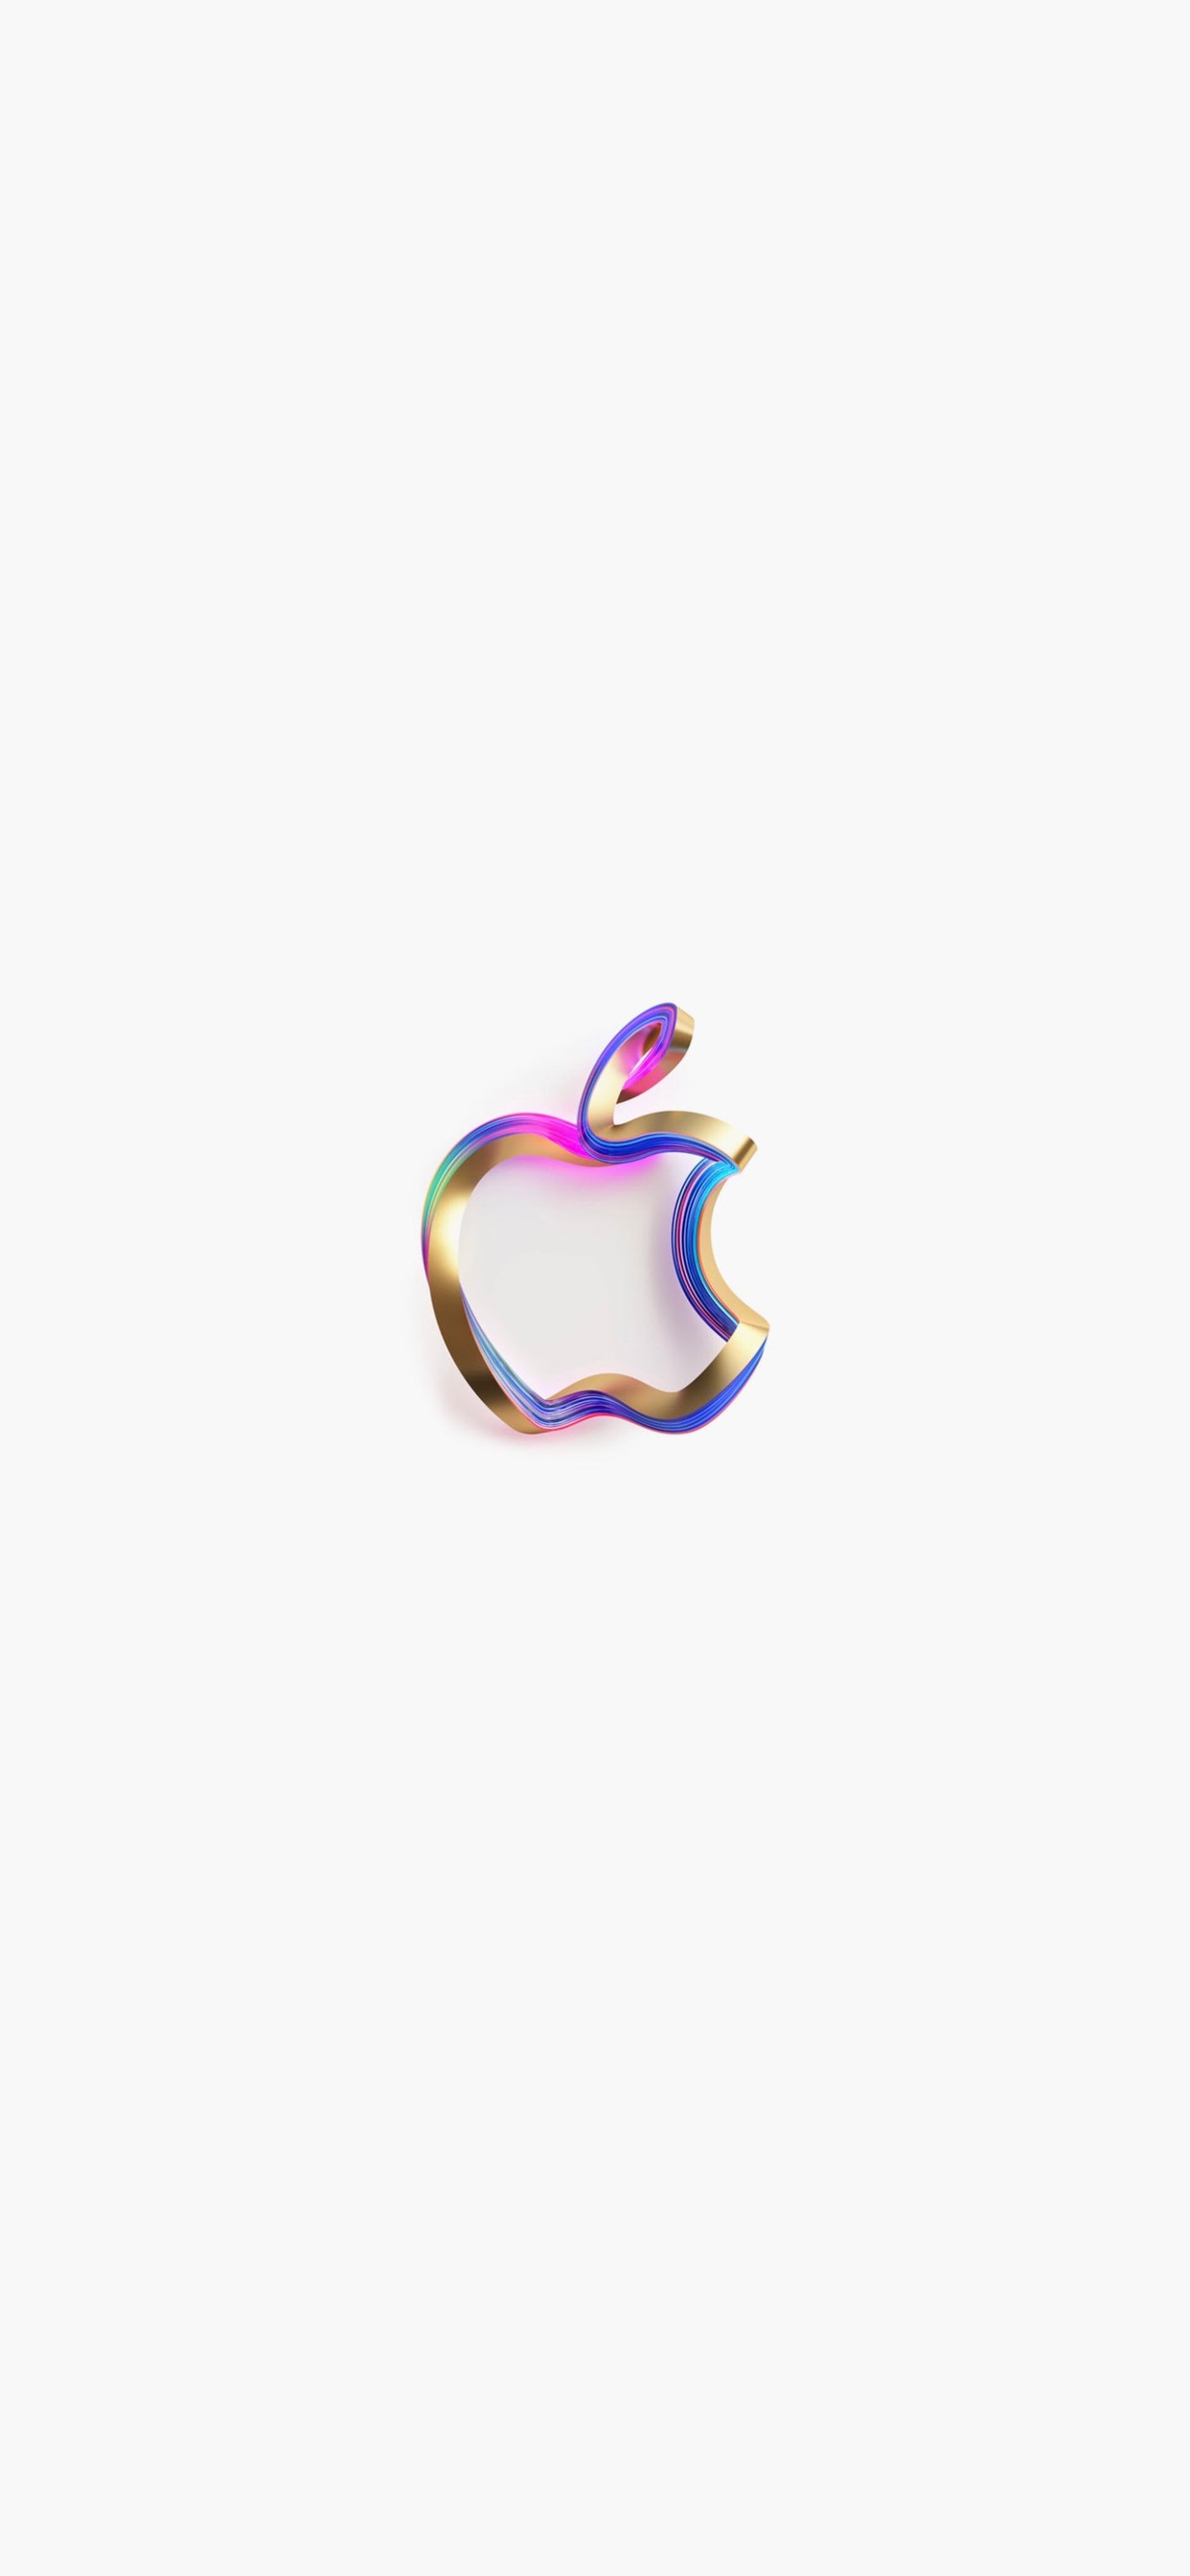 There's more in the making: 33 Apple logo wallpapers